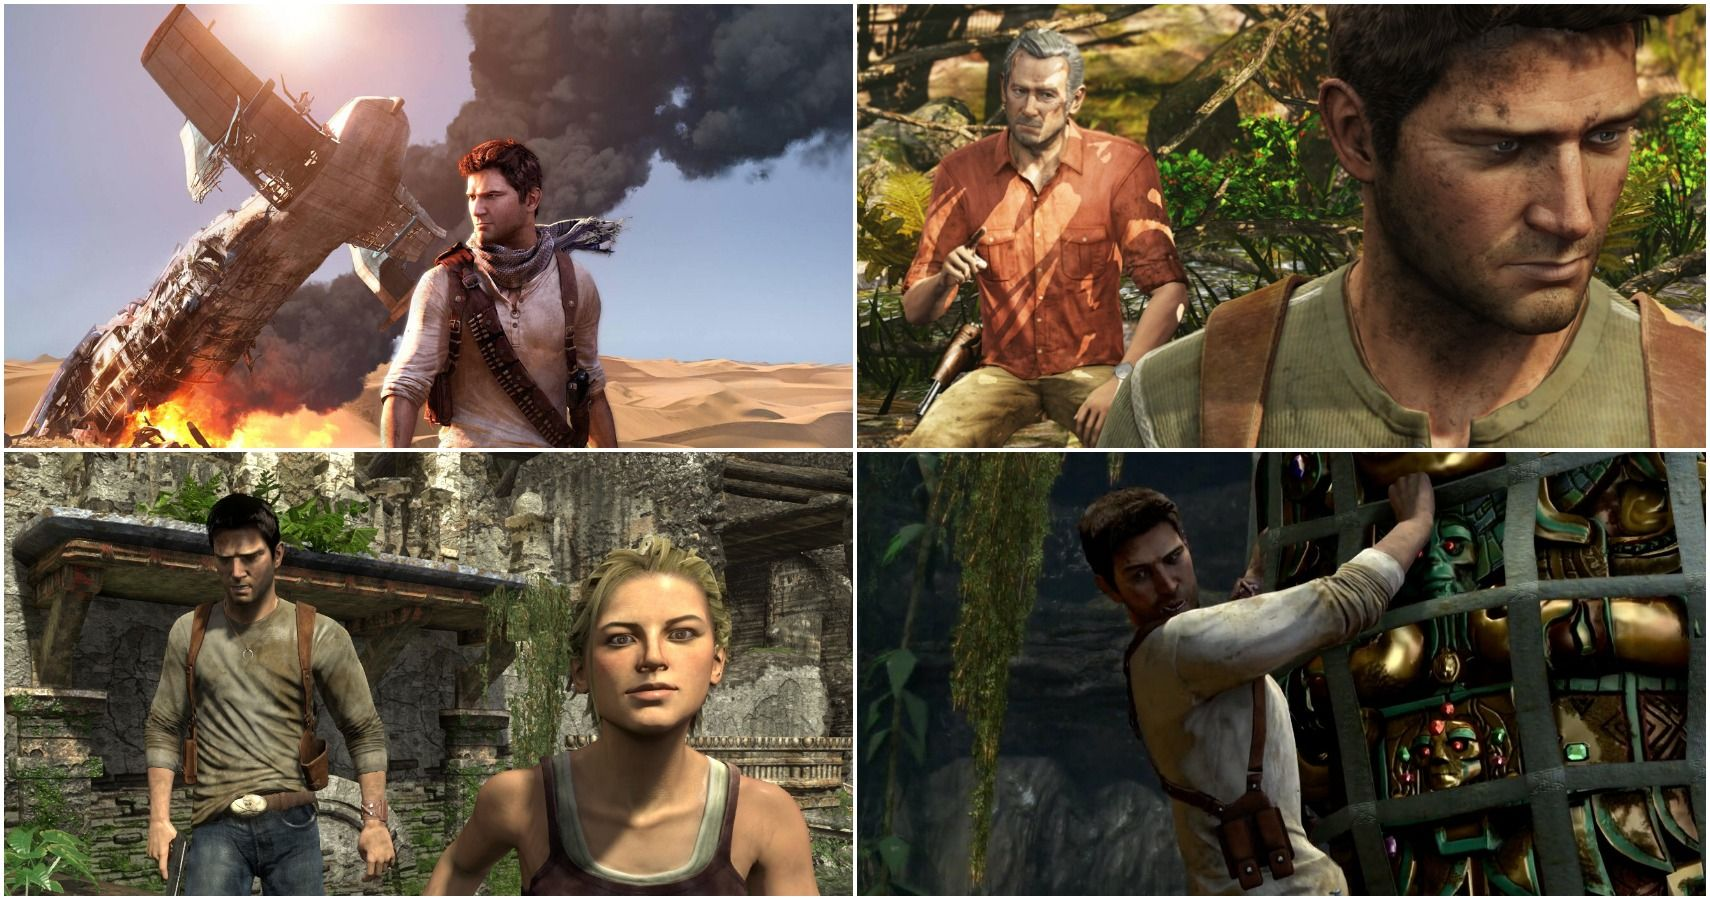 Uncharted 5 5 Things We Want To See In The Next Game 5 We Can